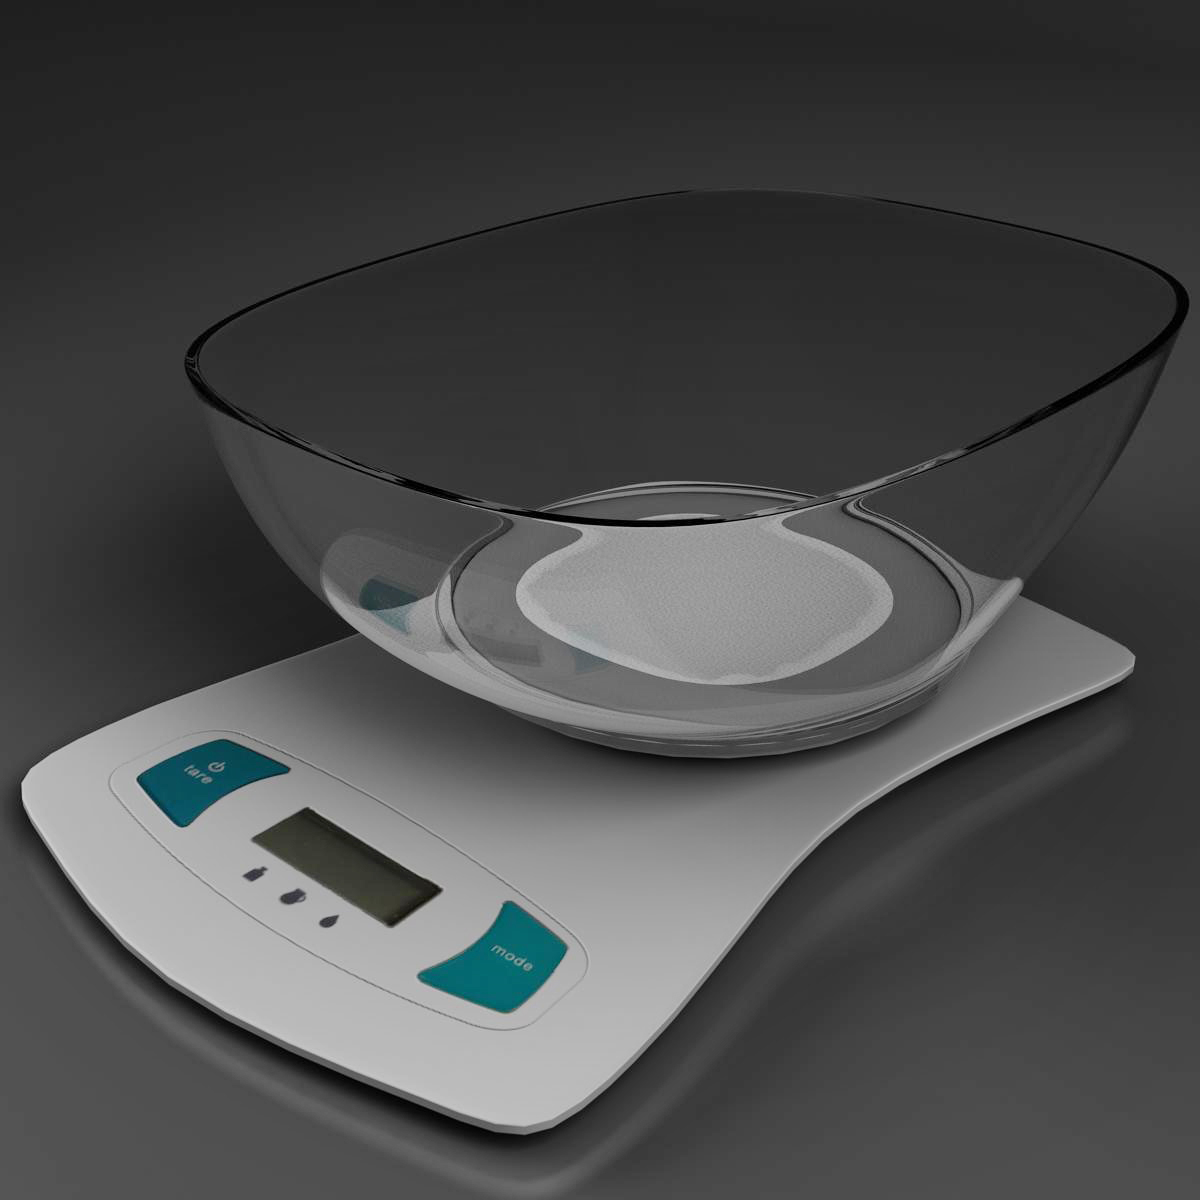 scales 3d model 3ds max fbx ma mb obj 158945